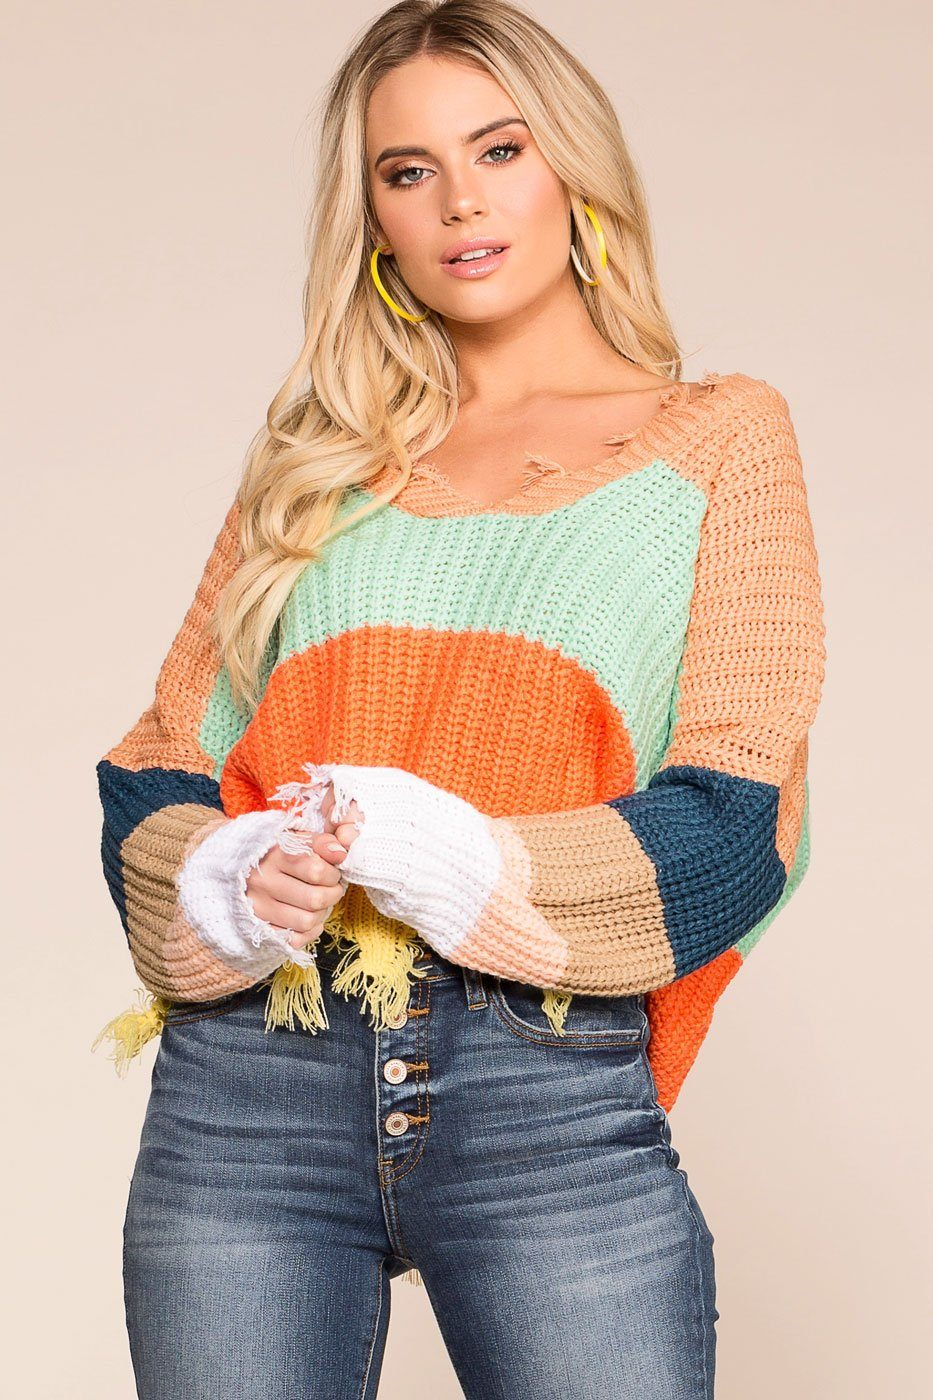 3409e4b5f35 Late Nights Amber Colorblock Distressed Knit Sweater | Miracle Sweater